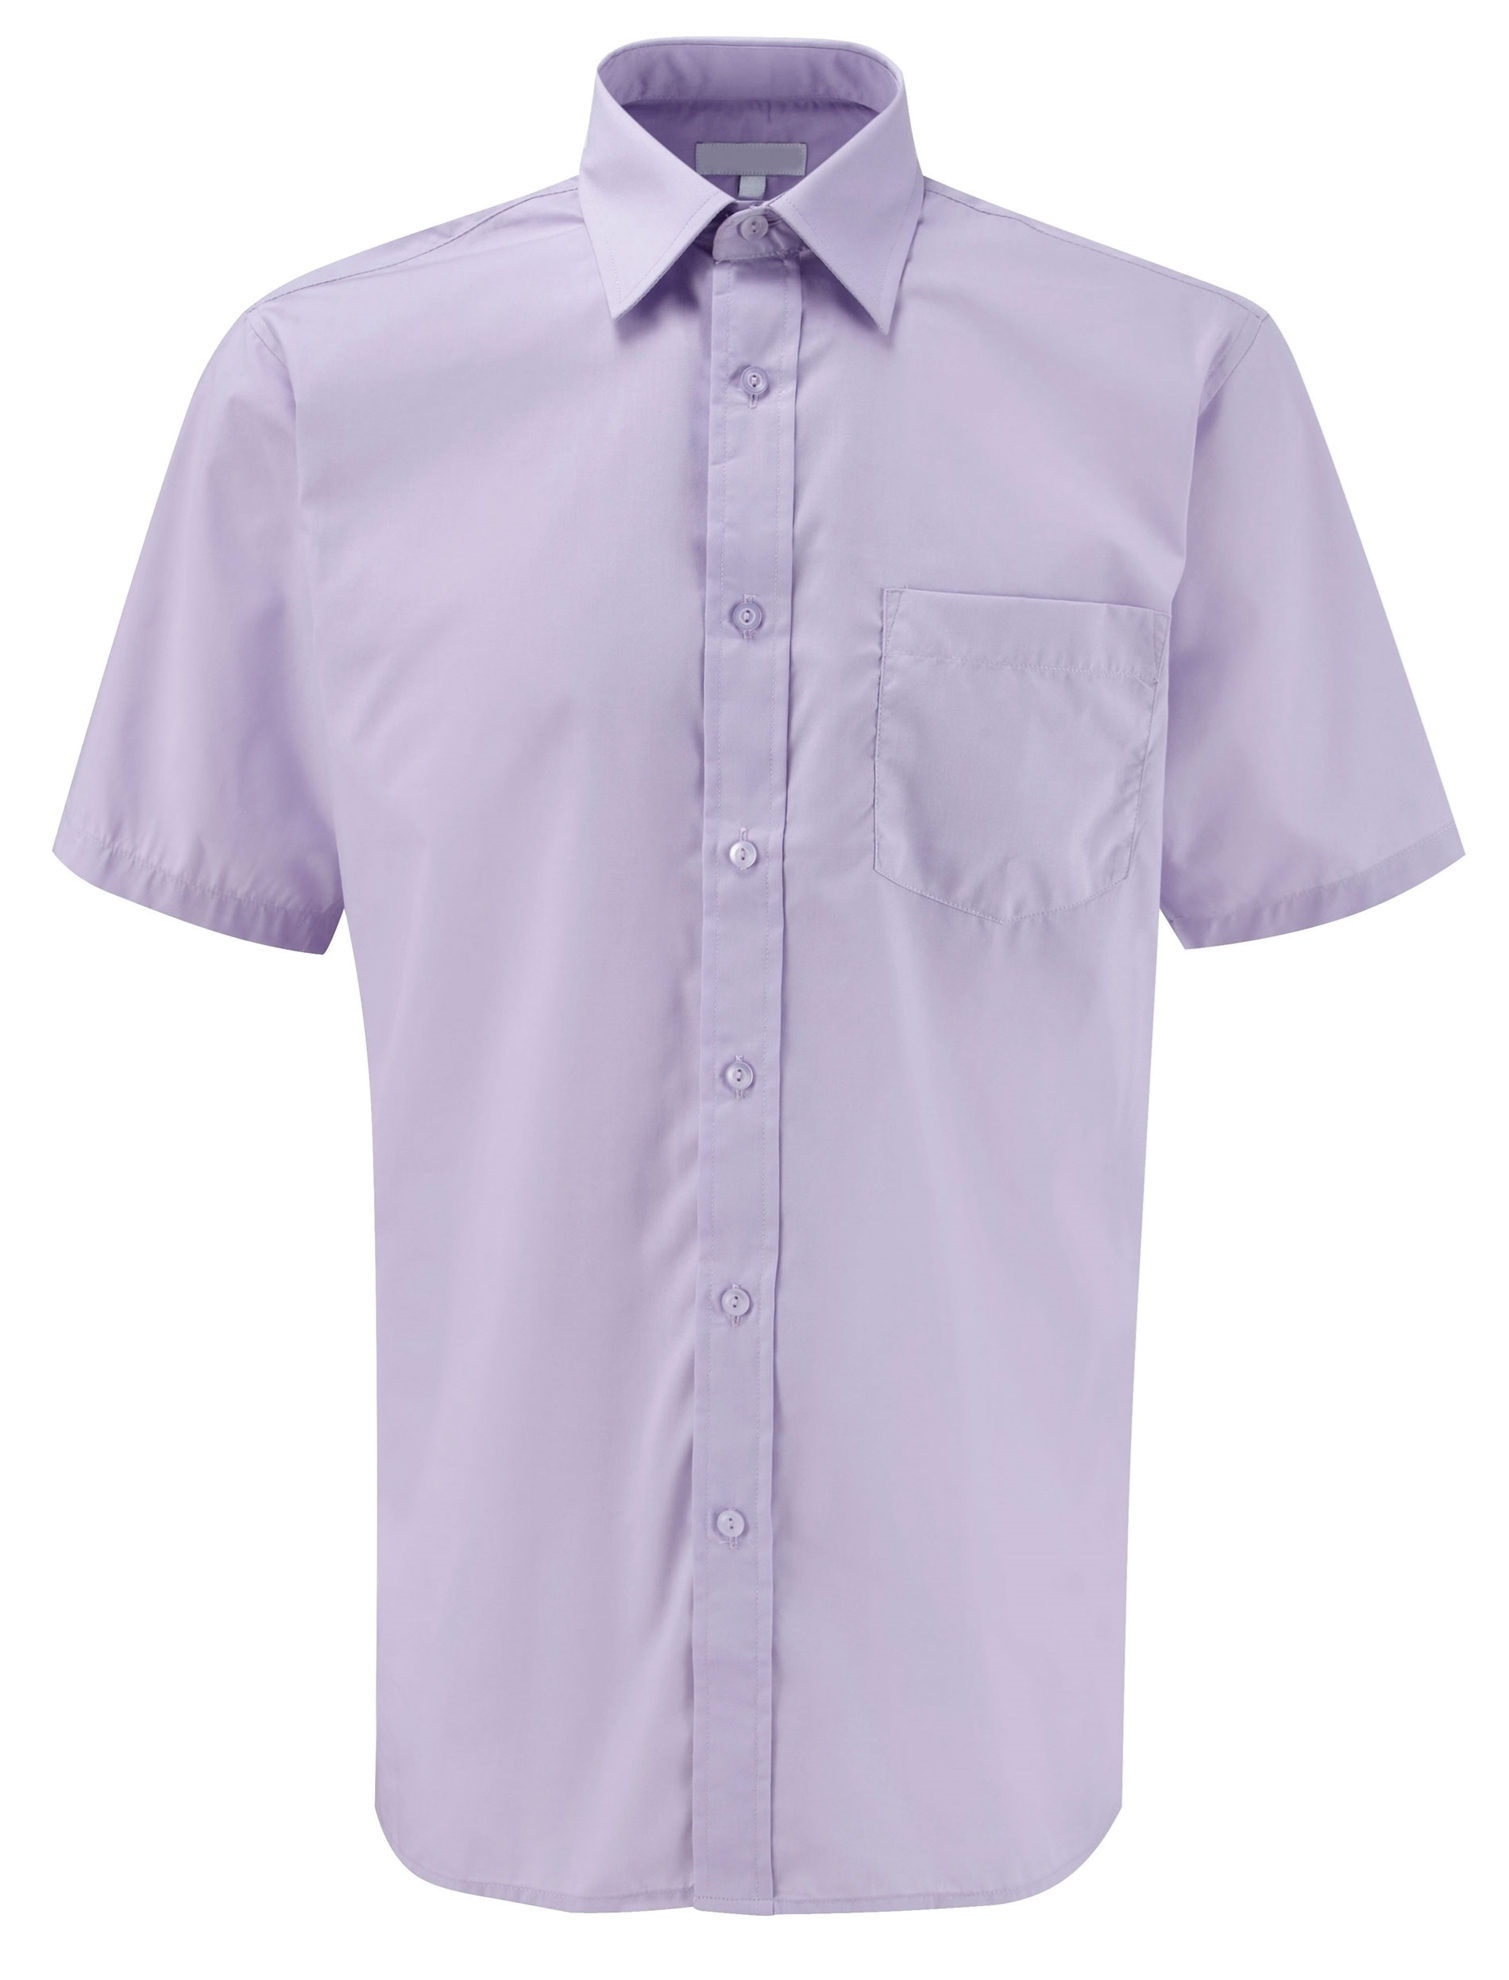 Picture of Male Short Sleeve Shirt - Plain Lilac